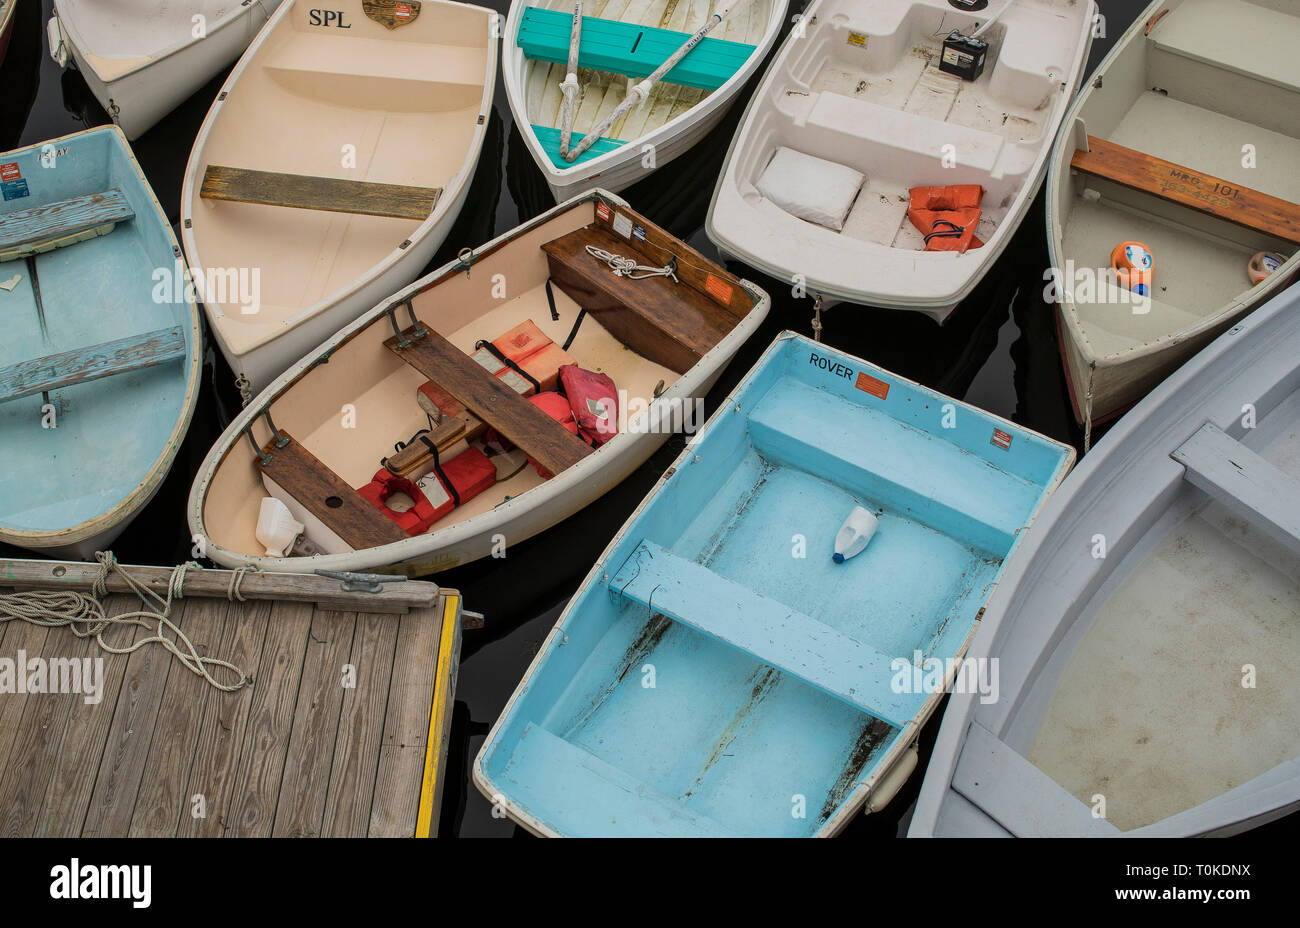 Busy during warm weather, Frisbee Wharf has a waiting list of boats wanting mooring for the summer. Small restaurant, ice cream shop at Pepperell Cove. - Stock Image